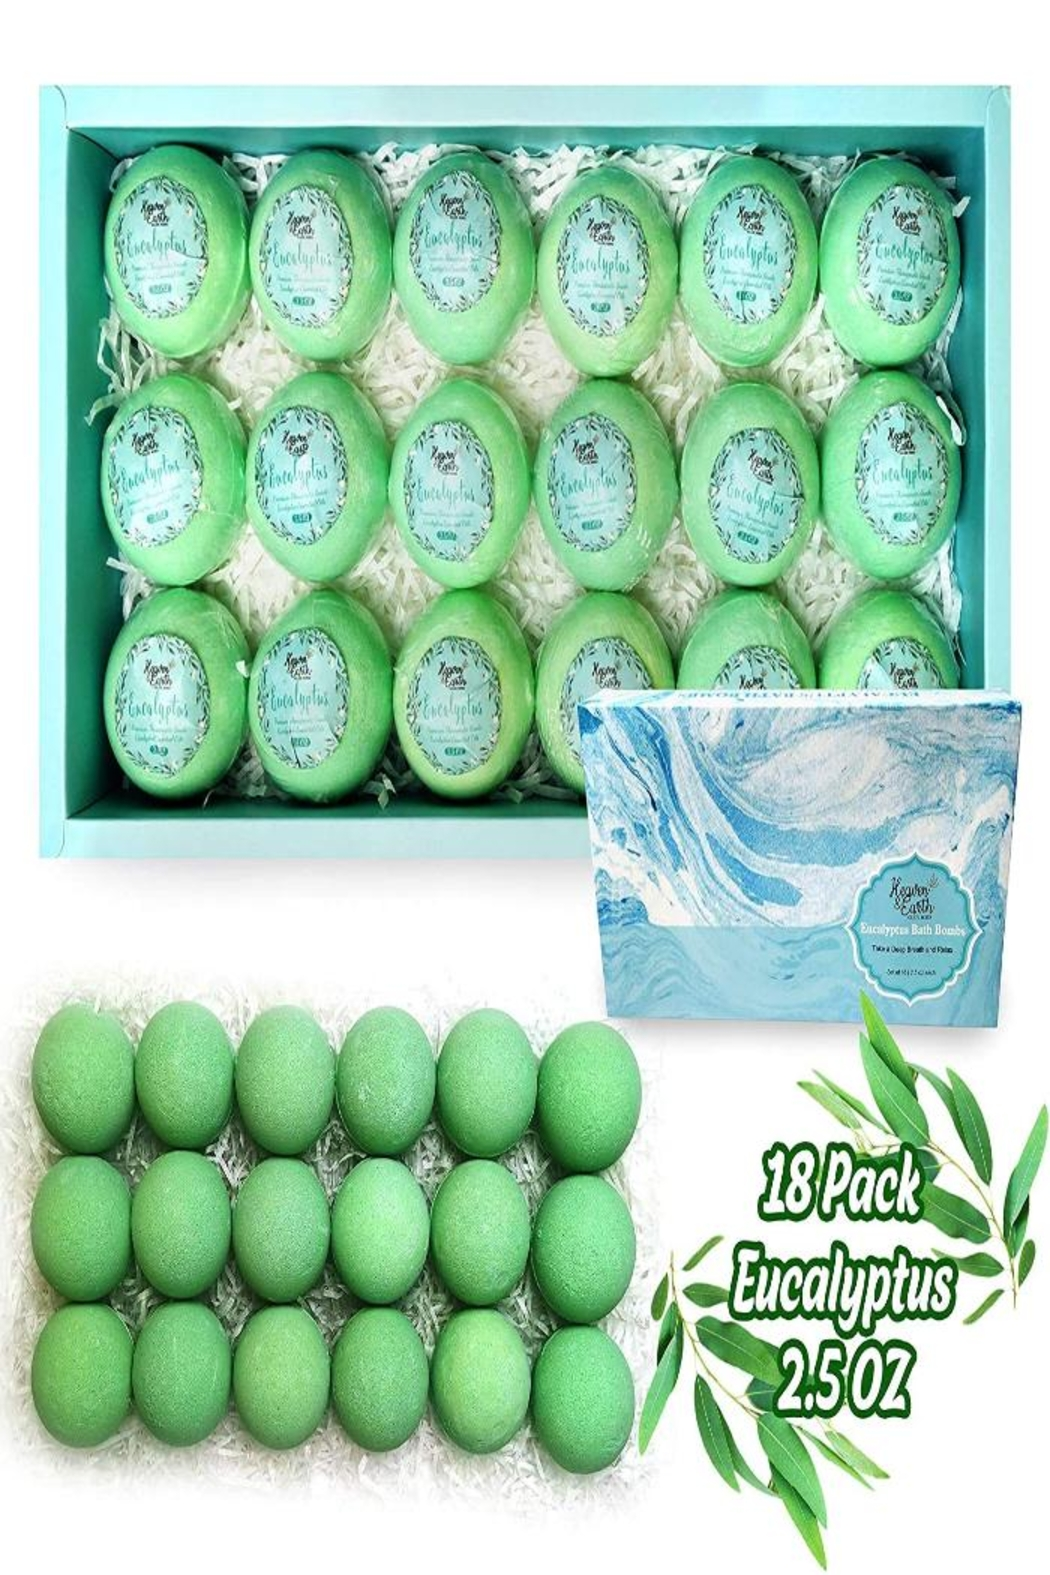 Parker Bath Bomb Gift Sets For Men. 18 Therapeutic Eucalyptus Bath Bombs For Sore Muscles - Side Cropped Image